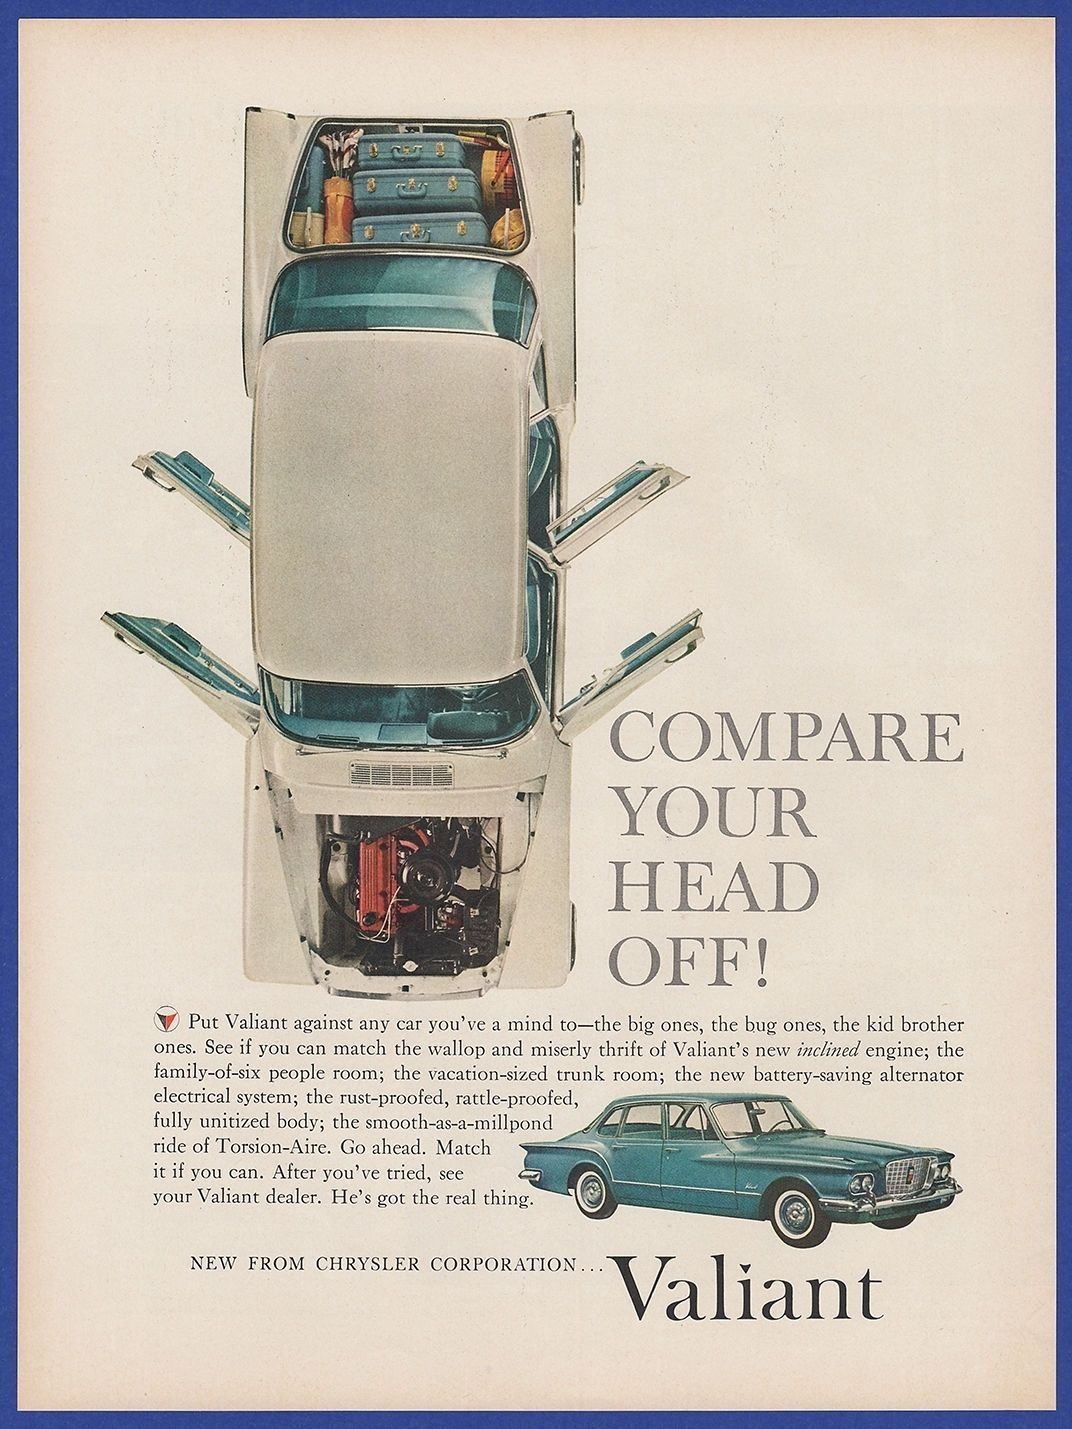 Vintage 1960 Chrysler Valiant Automobile Car Classic Rare Print Ad Plymouth For Sale I Combine Shipping At No Extra Charge Add 3 Or More Ads To The Cart And Receive Free Checkout